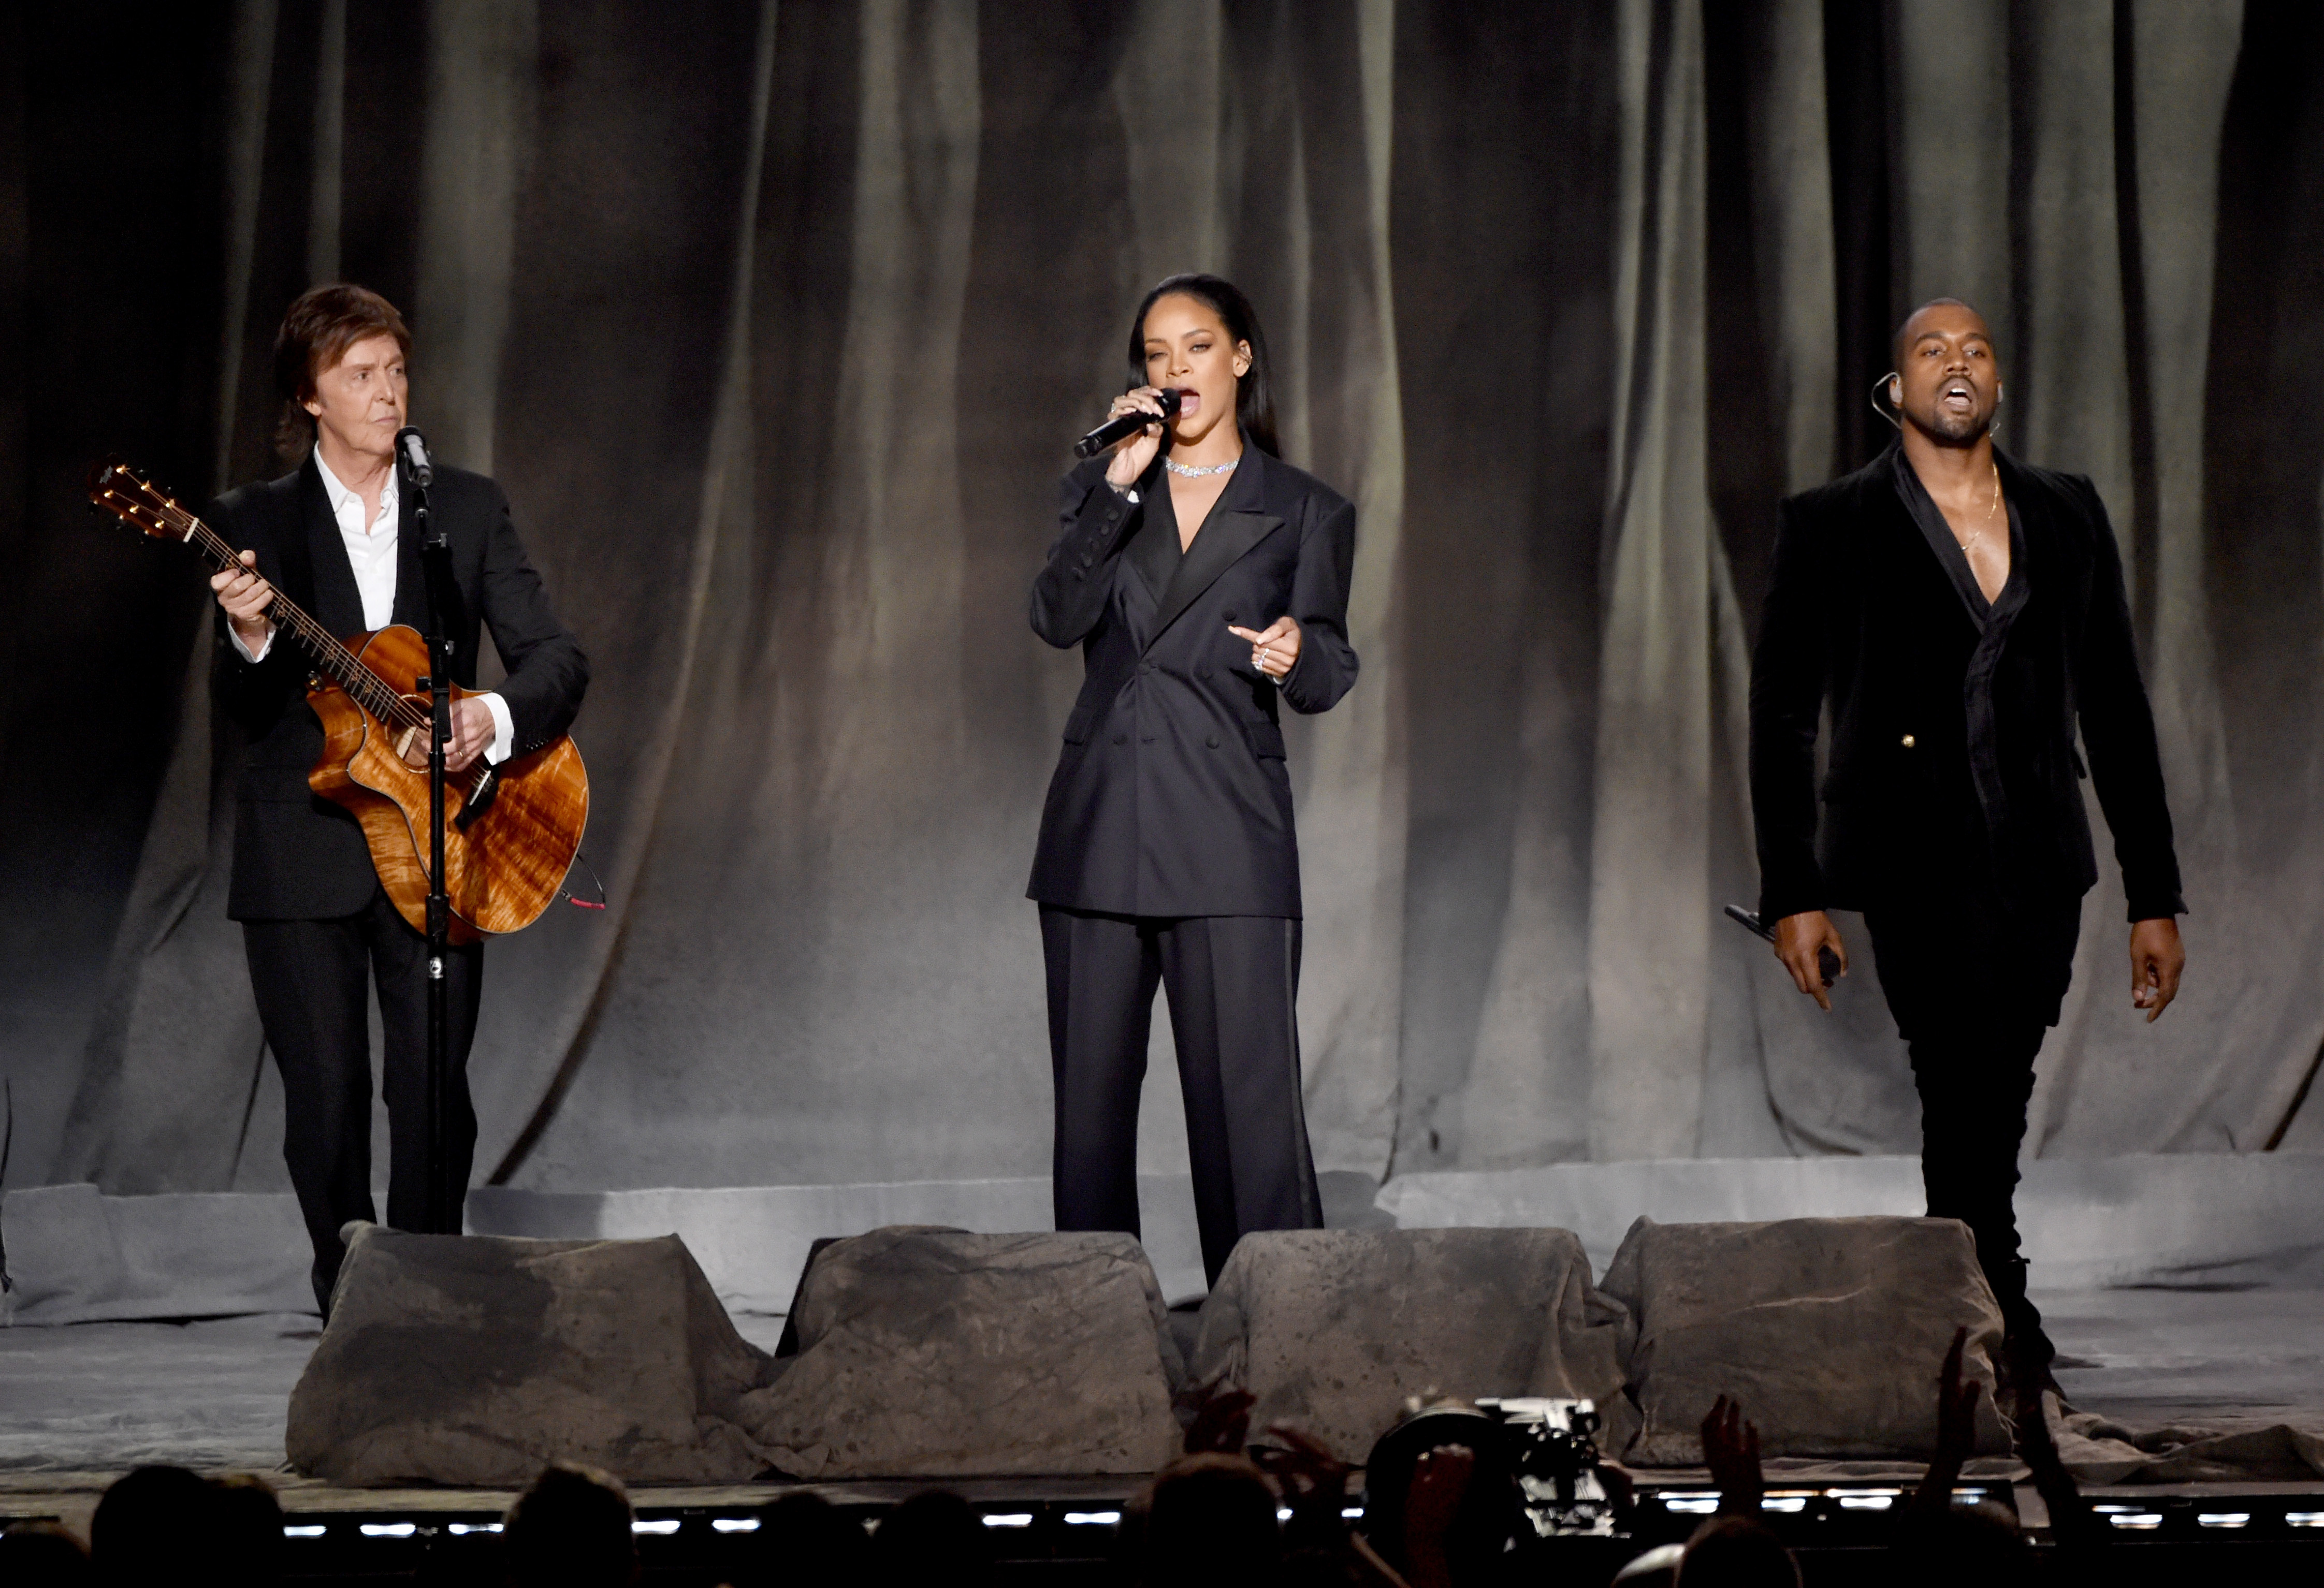 LOS ANGELES, CA - FEBRUARY 08:  (L-R) Musician Paul McCartney, singer Rihanna, and rapper Kanye West perform onstage during T